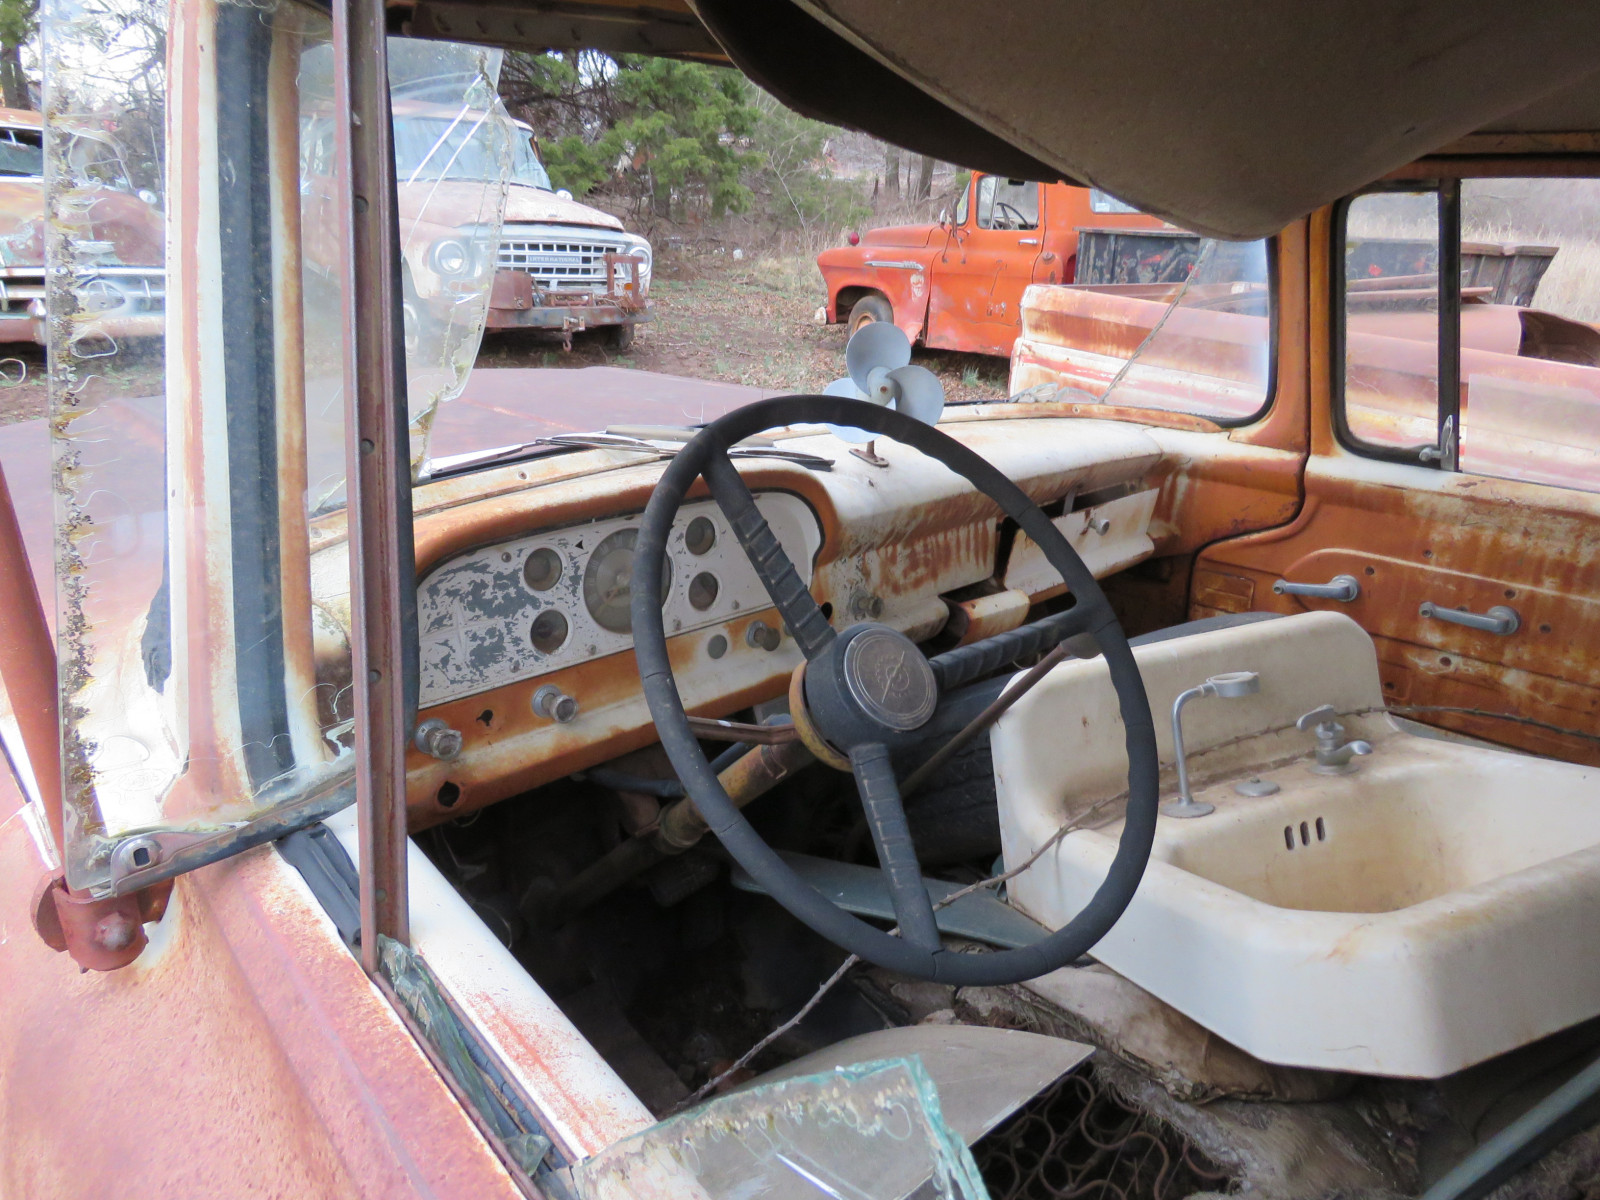 1960 Ford Panel Truck - Image 5